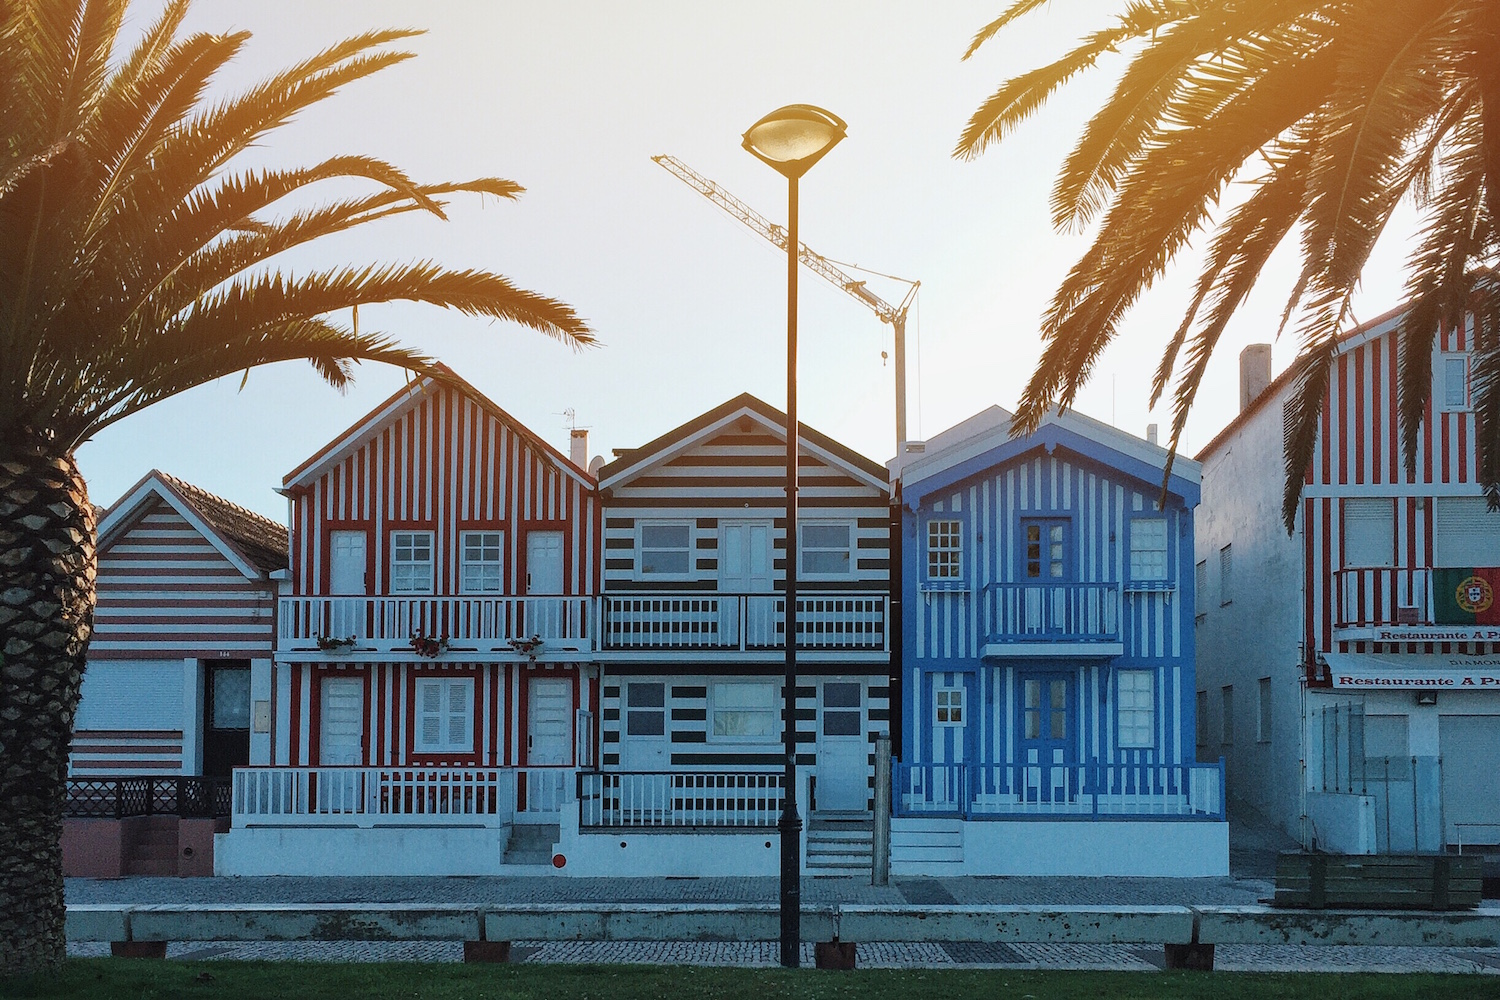 Travel Diary_A Long Weekend In Porto_by Meanwhile in Awesometown_Mens Fashion and Lifestyle Blog from Austria_Colorful Houses_Costa Nova do Prado Aveiro